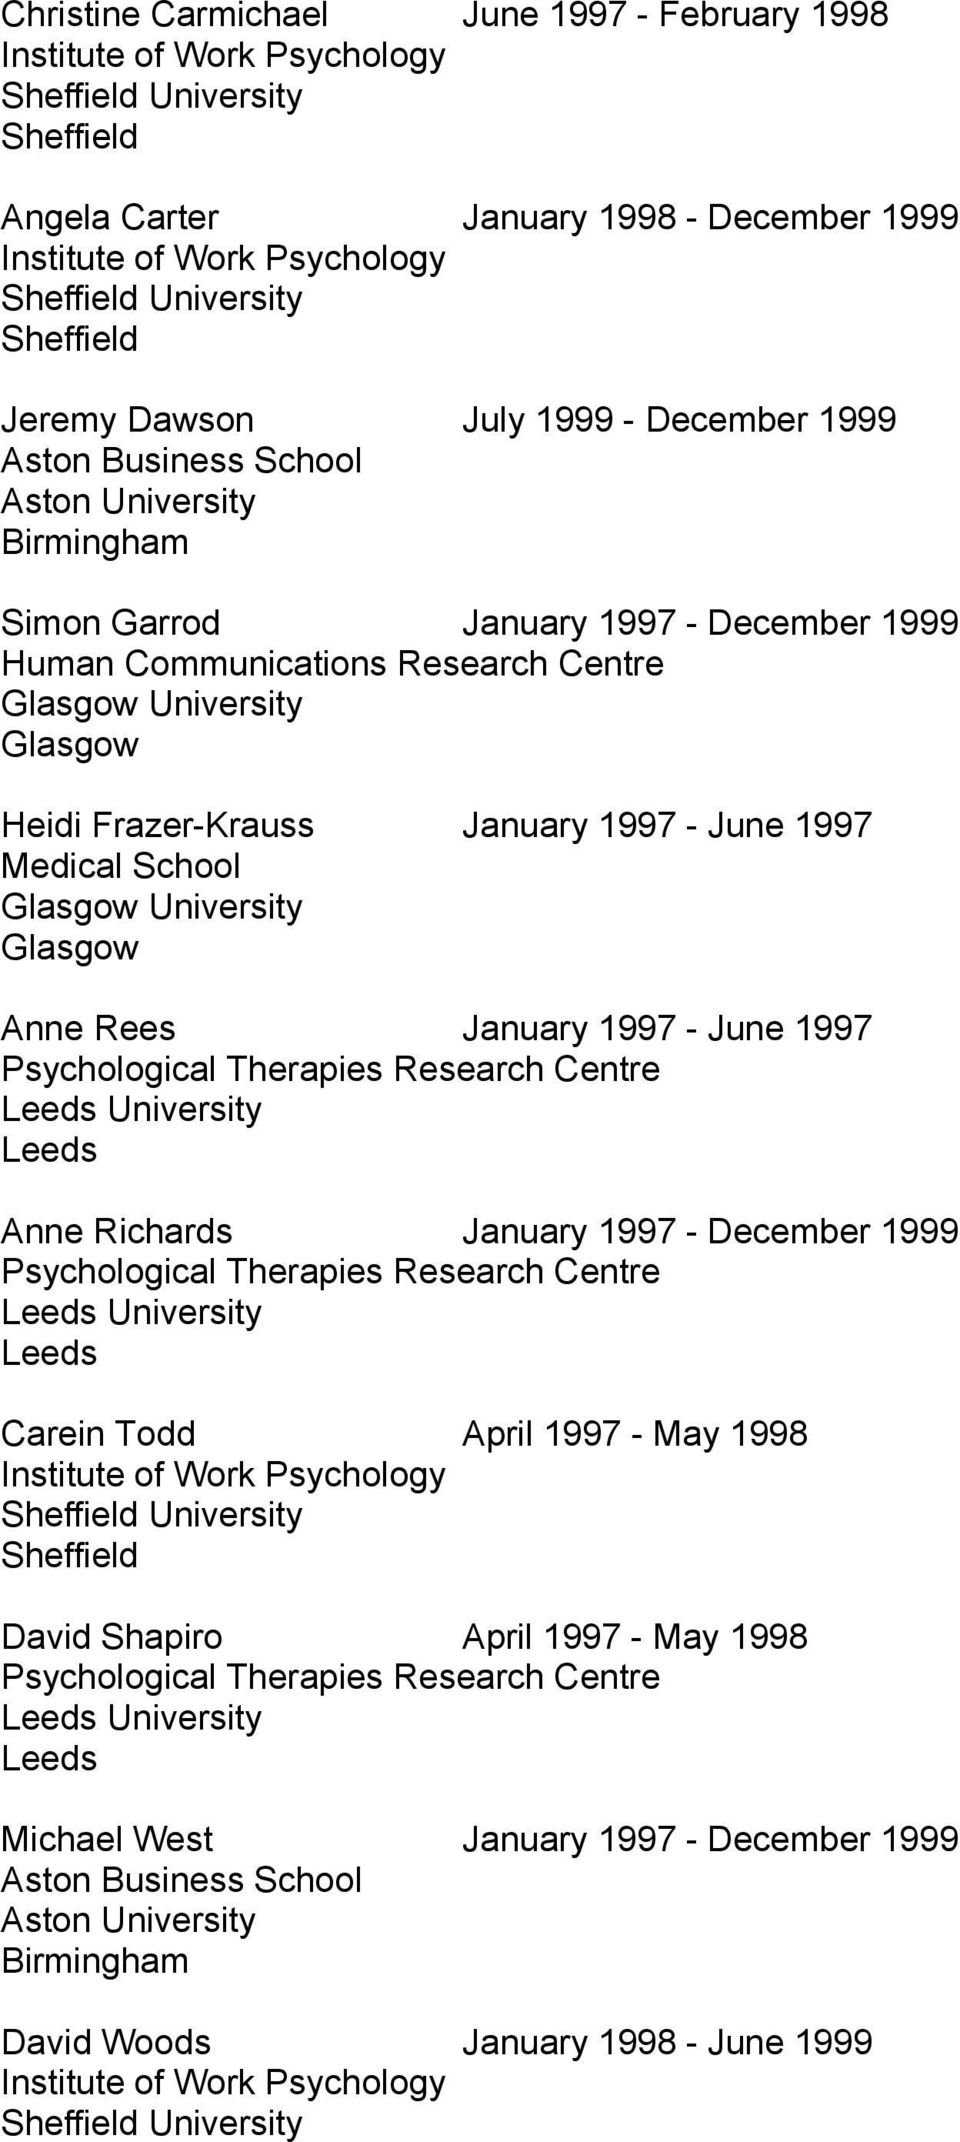 Glasgow Heidi Frazer-Krauss January 1997 - June 1997 Medical School Glasgow University Glasgow Anne Rees January 1997 - June 1997 Psychological Therapies Research Centre Leeds University Leeds Anne